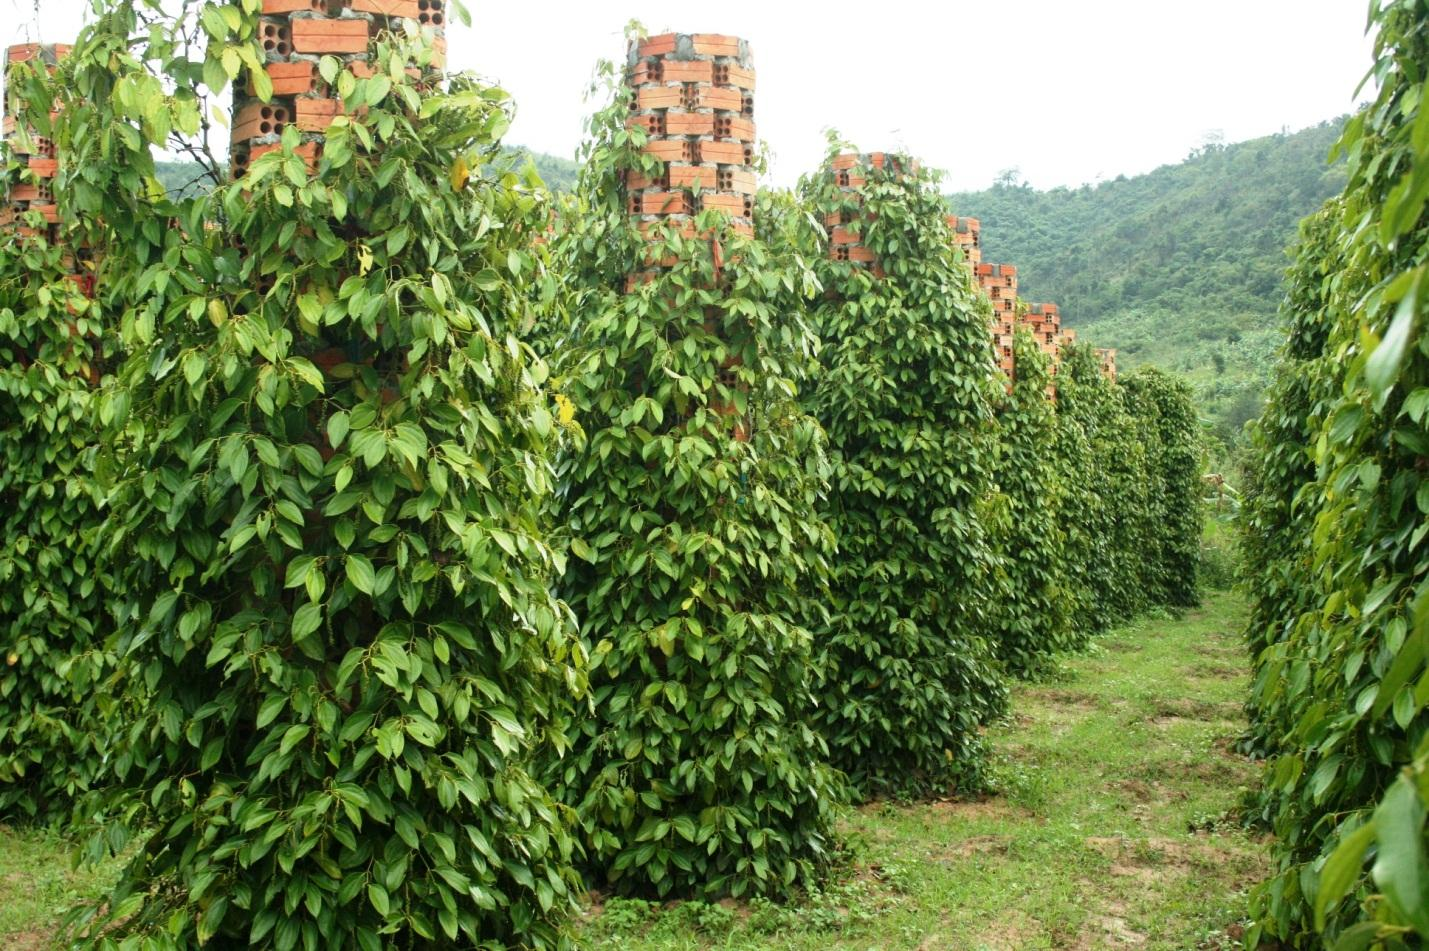 Green pepper farm in Phu Quoc Vietnam